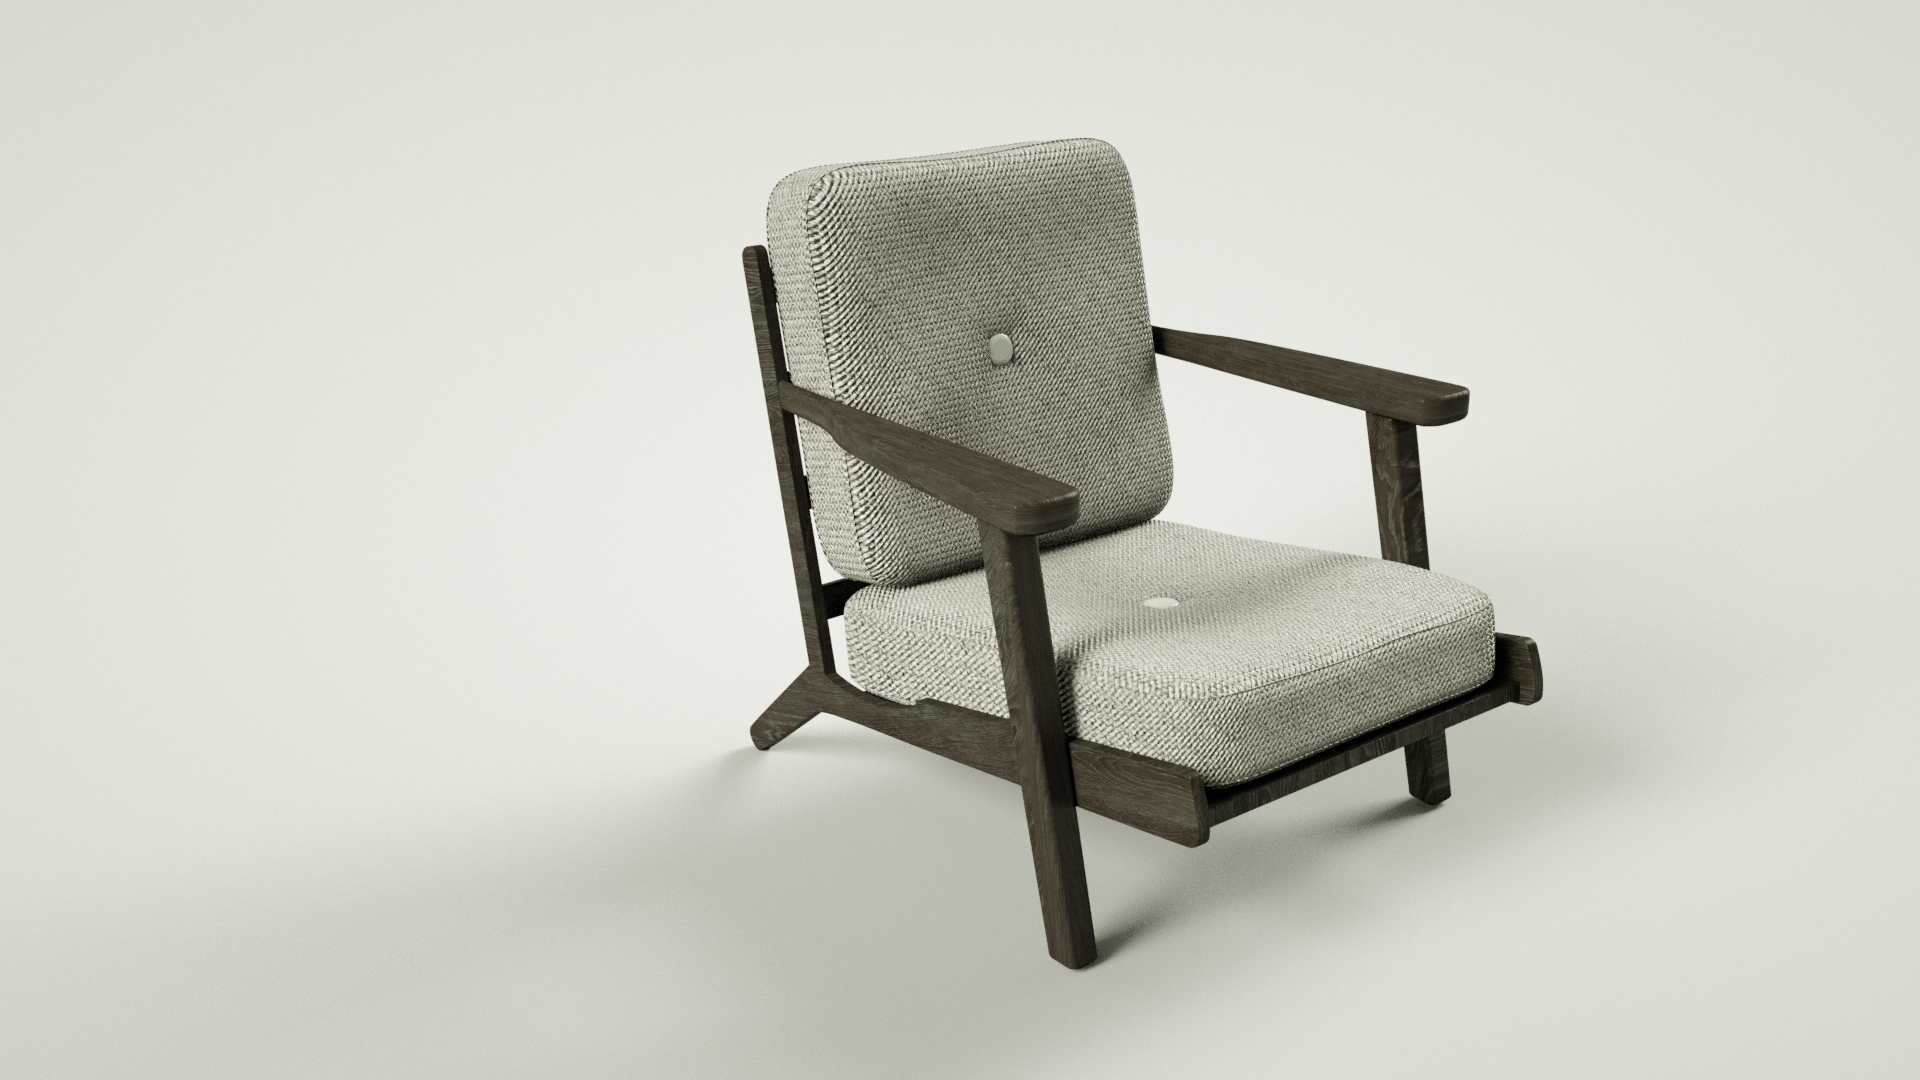 3D rendering of a chair in a forrest